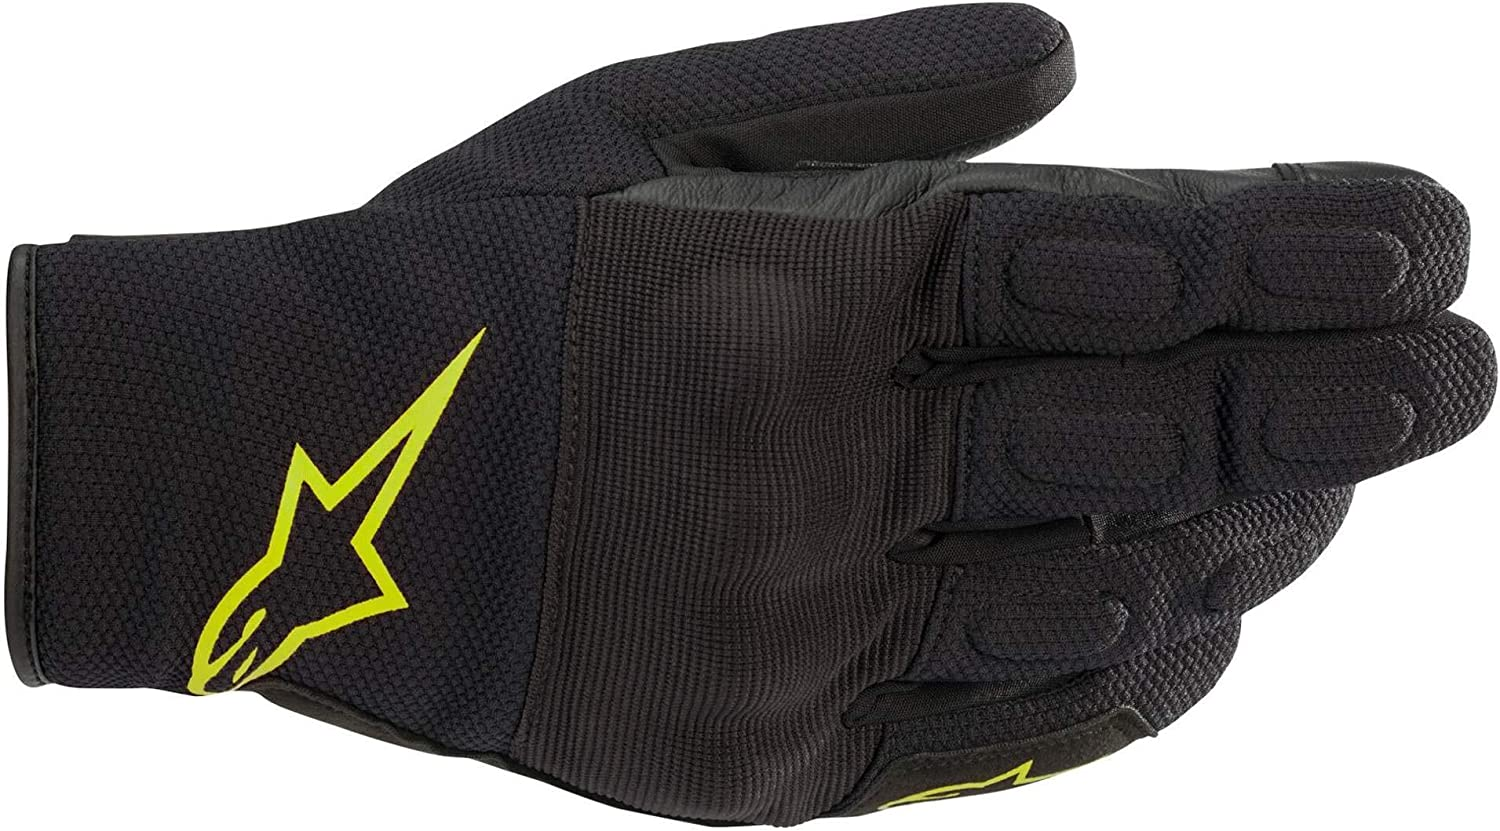 BLACK//YELLOW//FLUO L Alpinestars Gants moto S Max Drystar Gloves Black Yellow Fluo